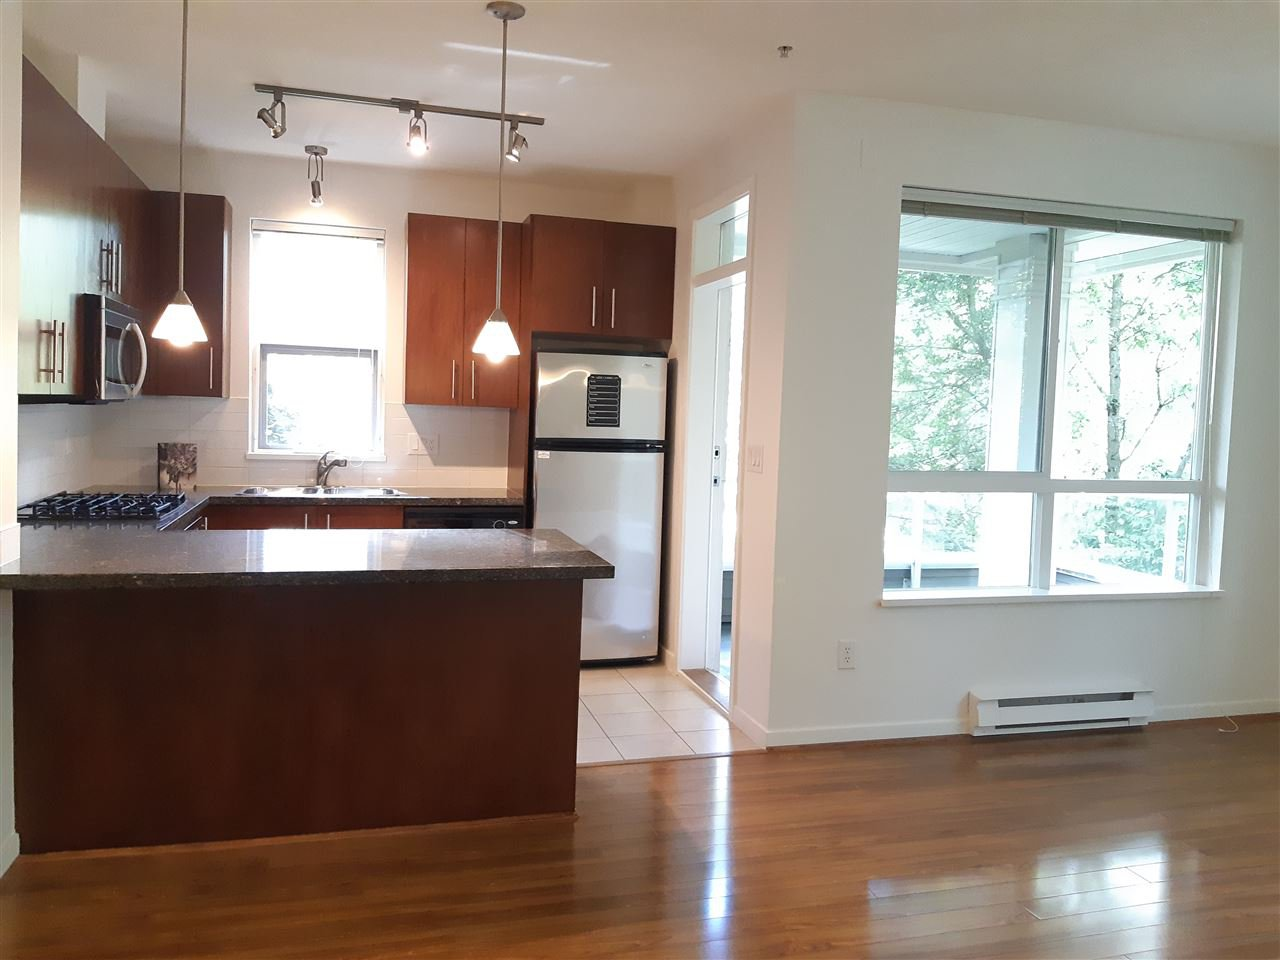 Window in kitchen and spacious balcony access.